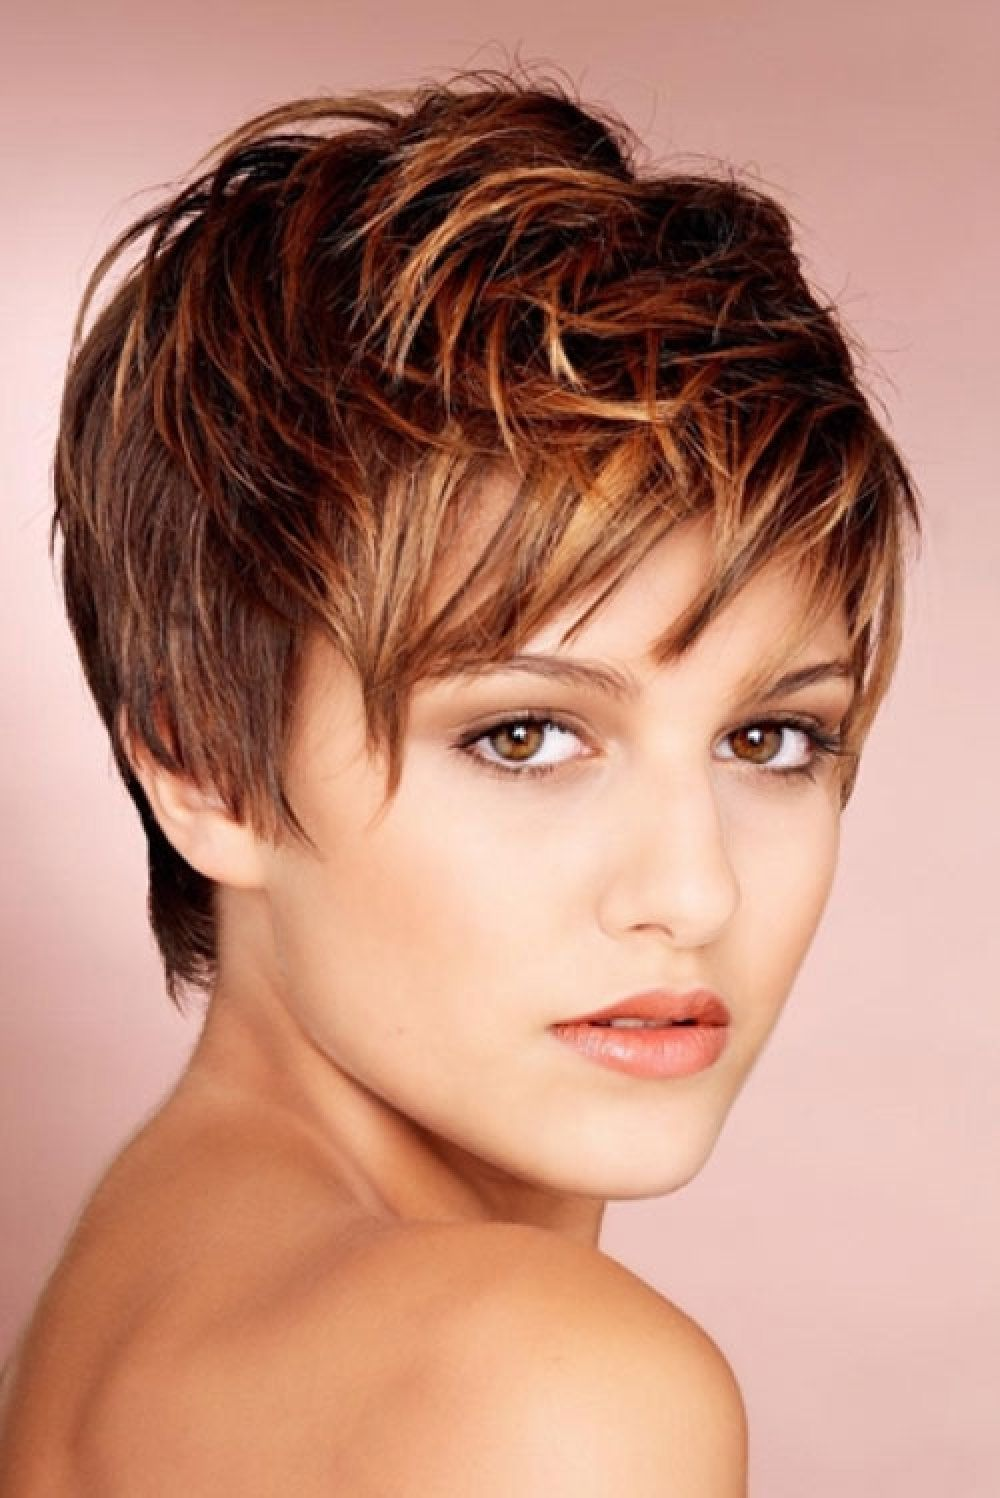 here's a cute pixie cut hairstyle with auburn hair color with